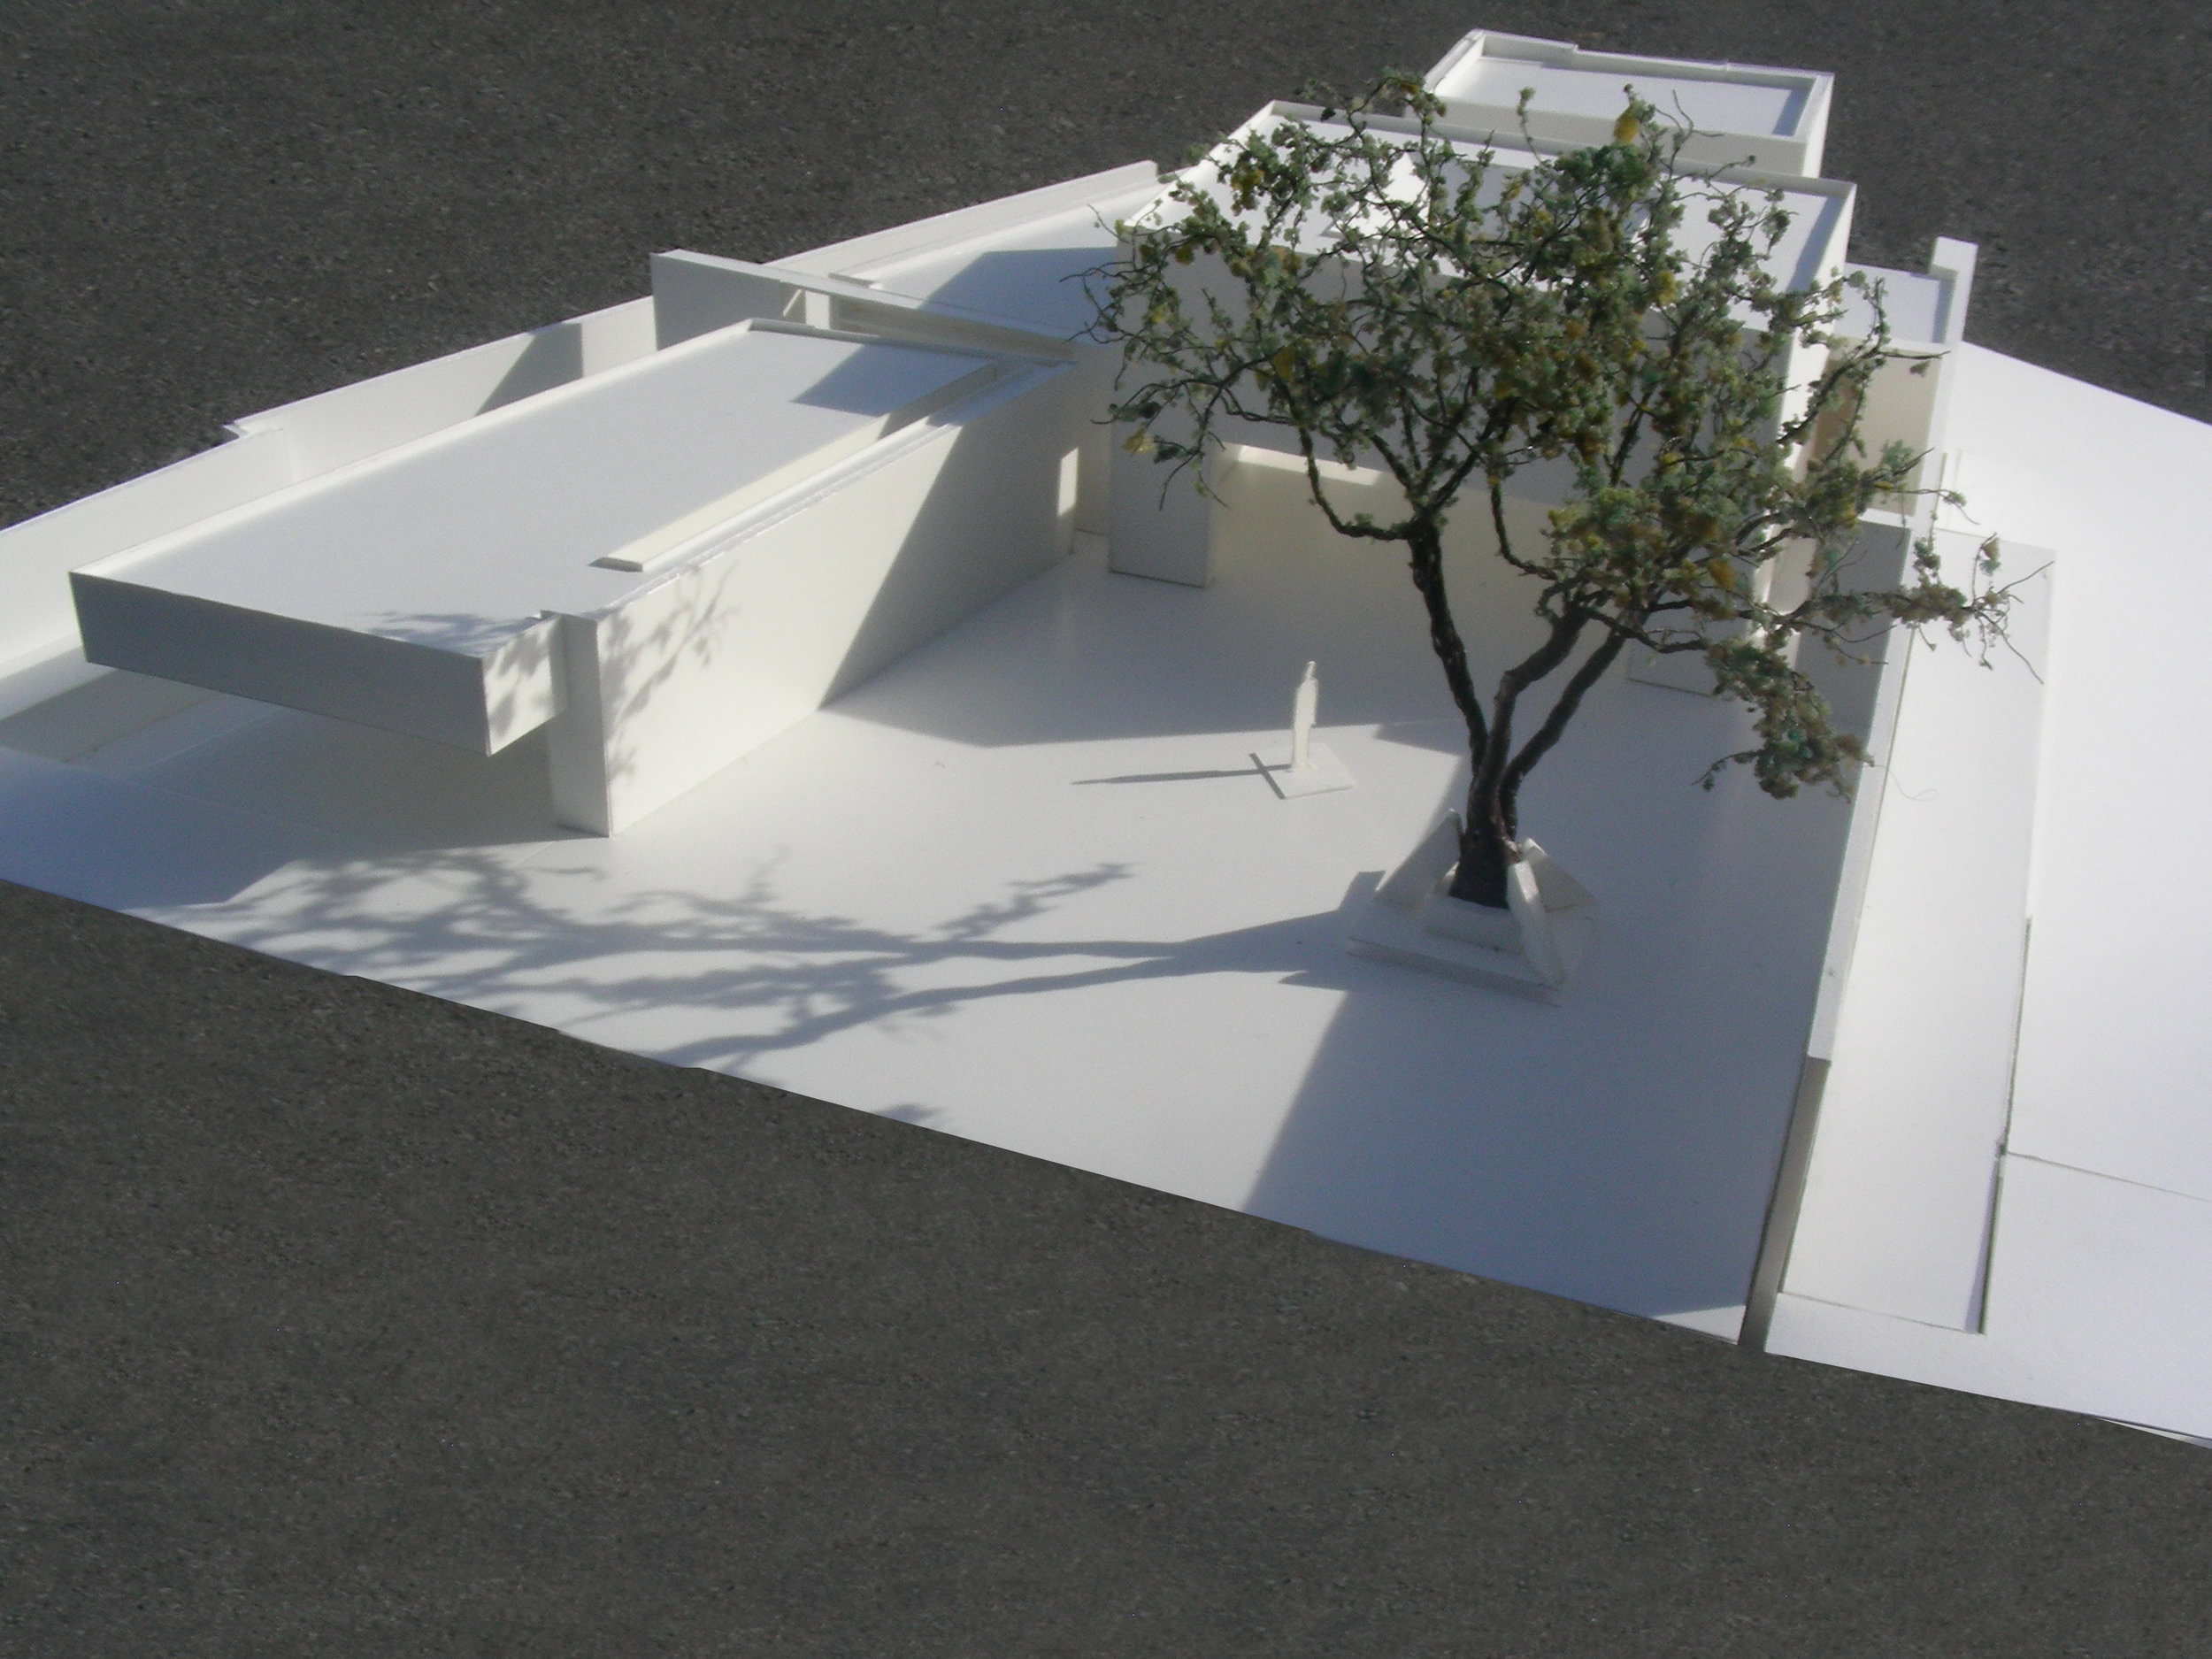 Aerial view of model looking south